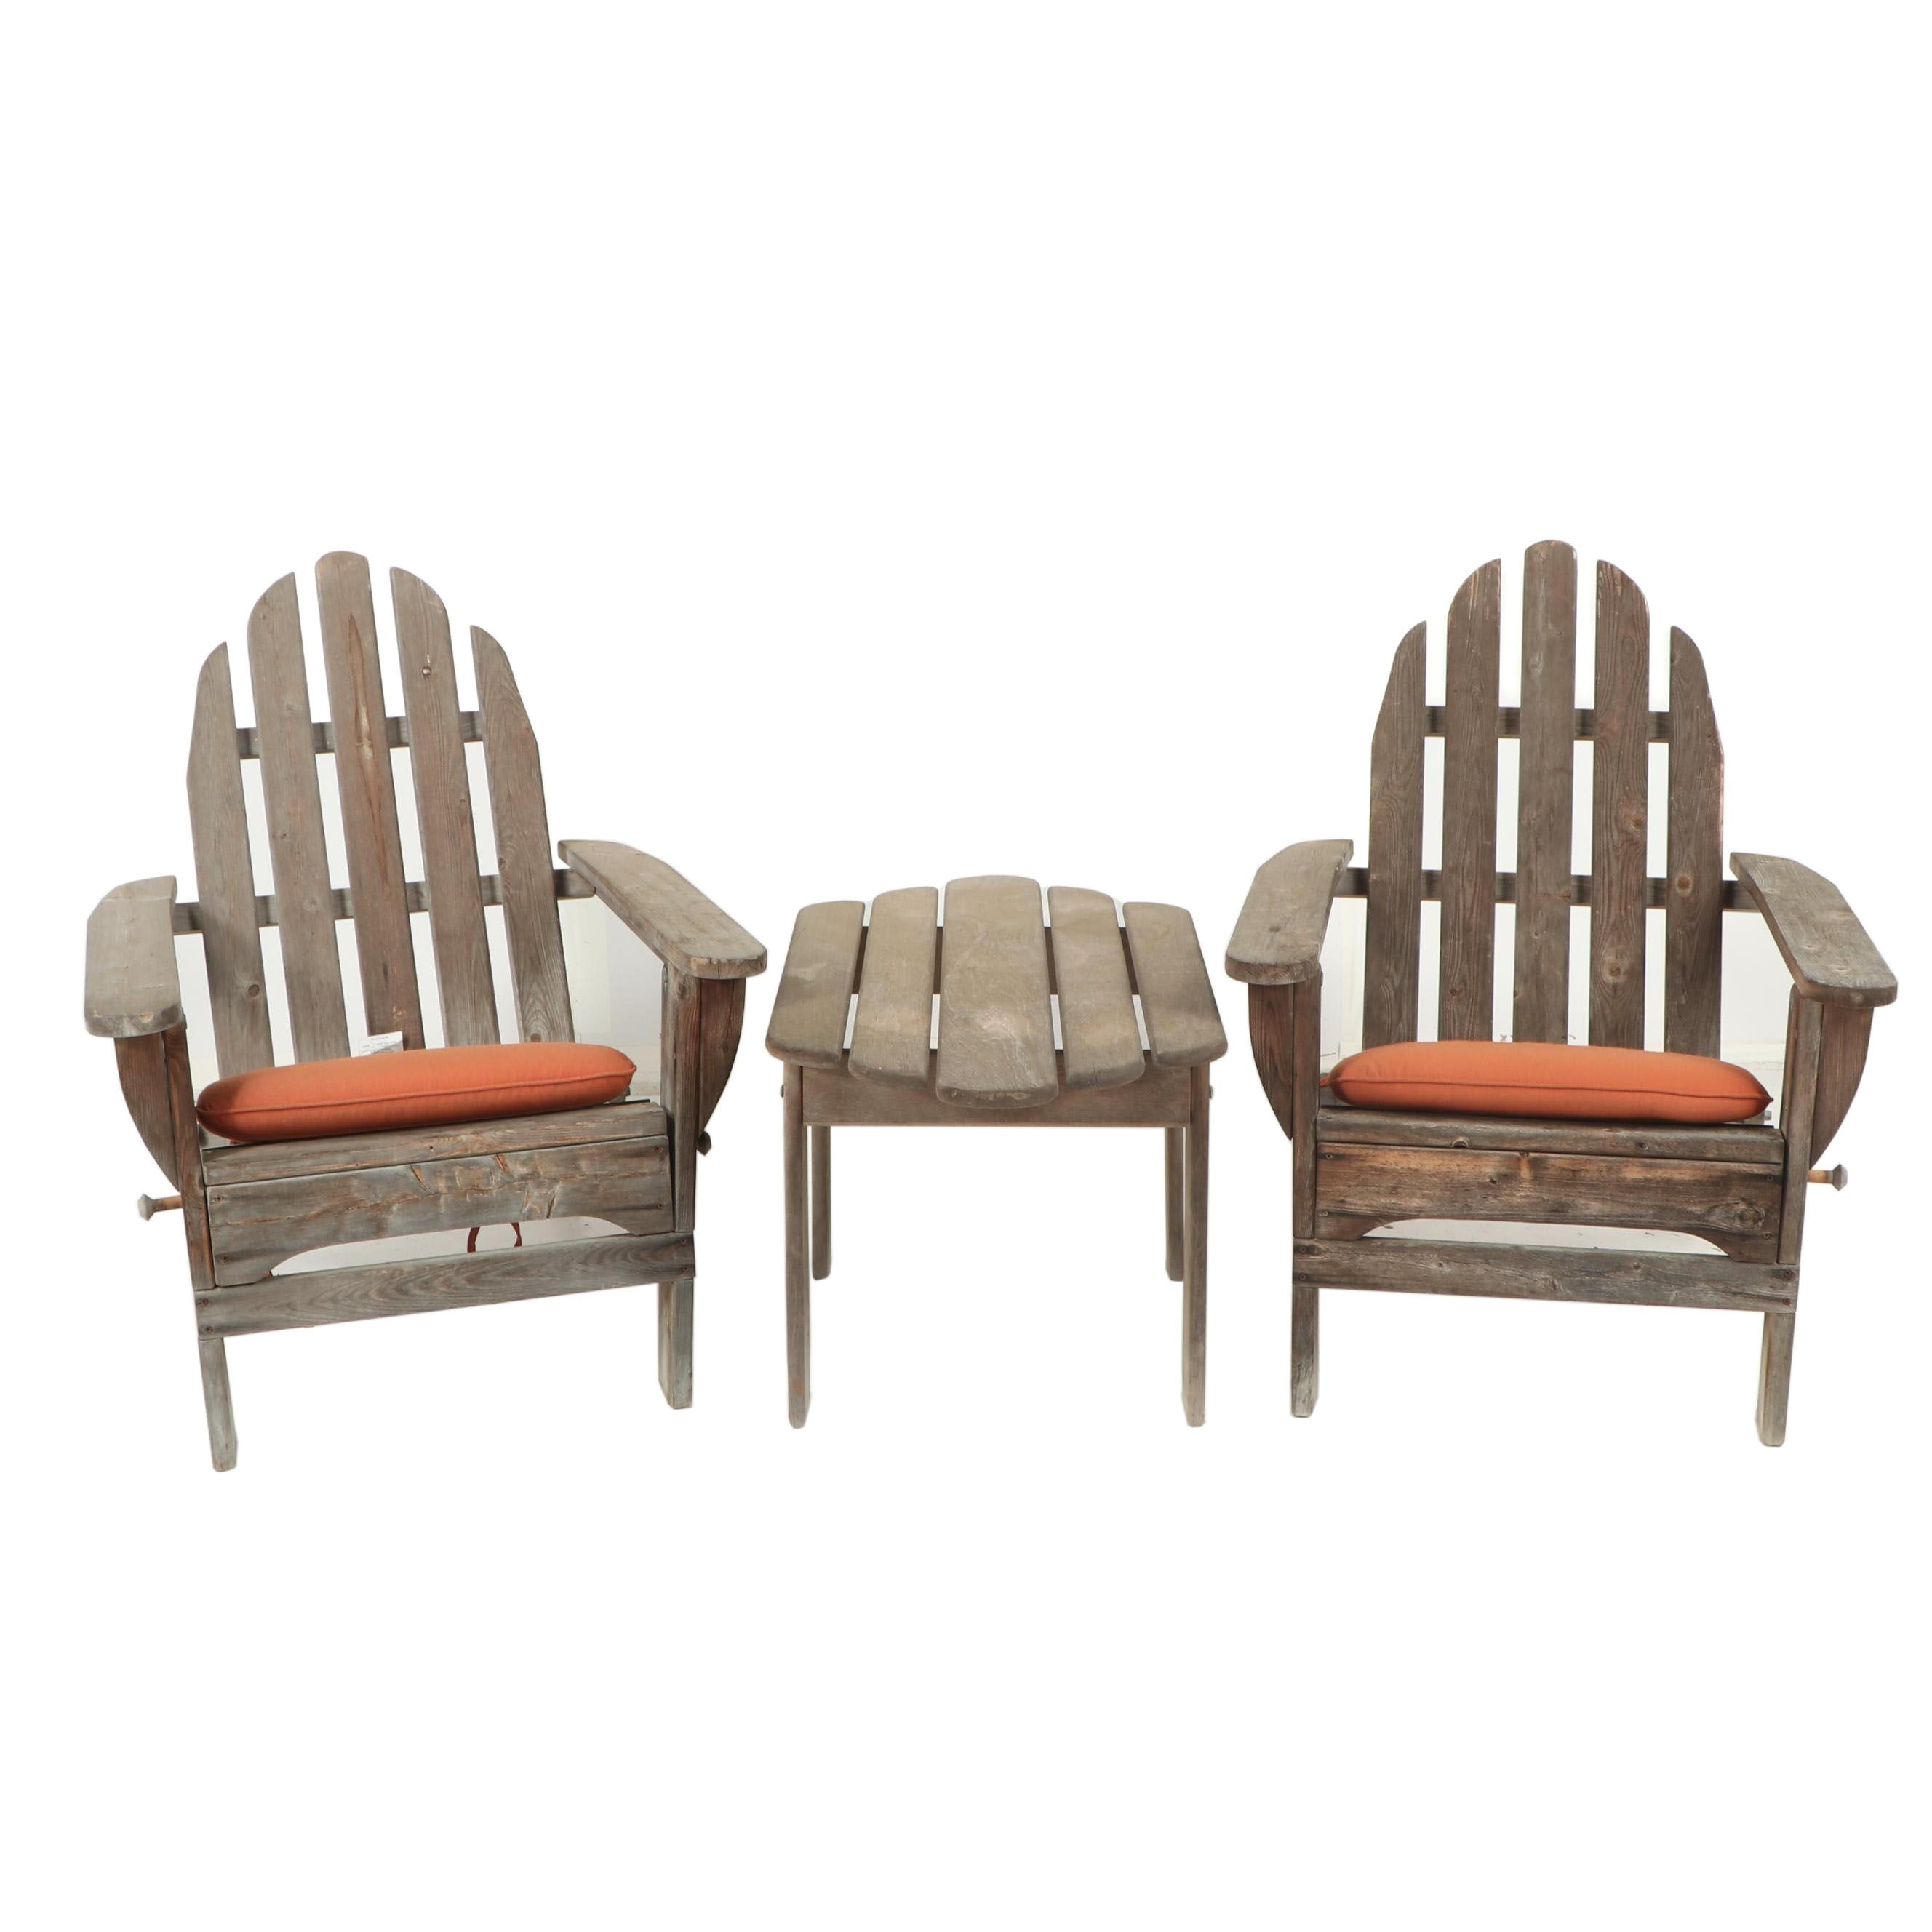 Two Patio Chairs and Table